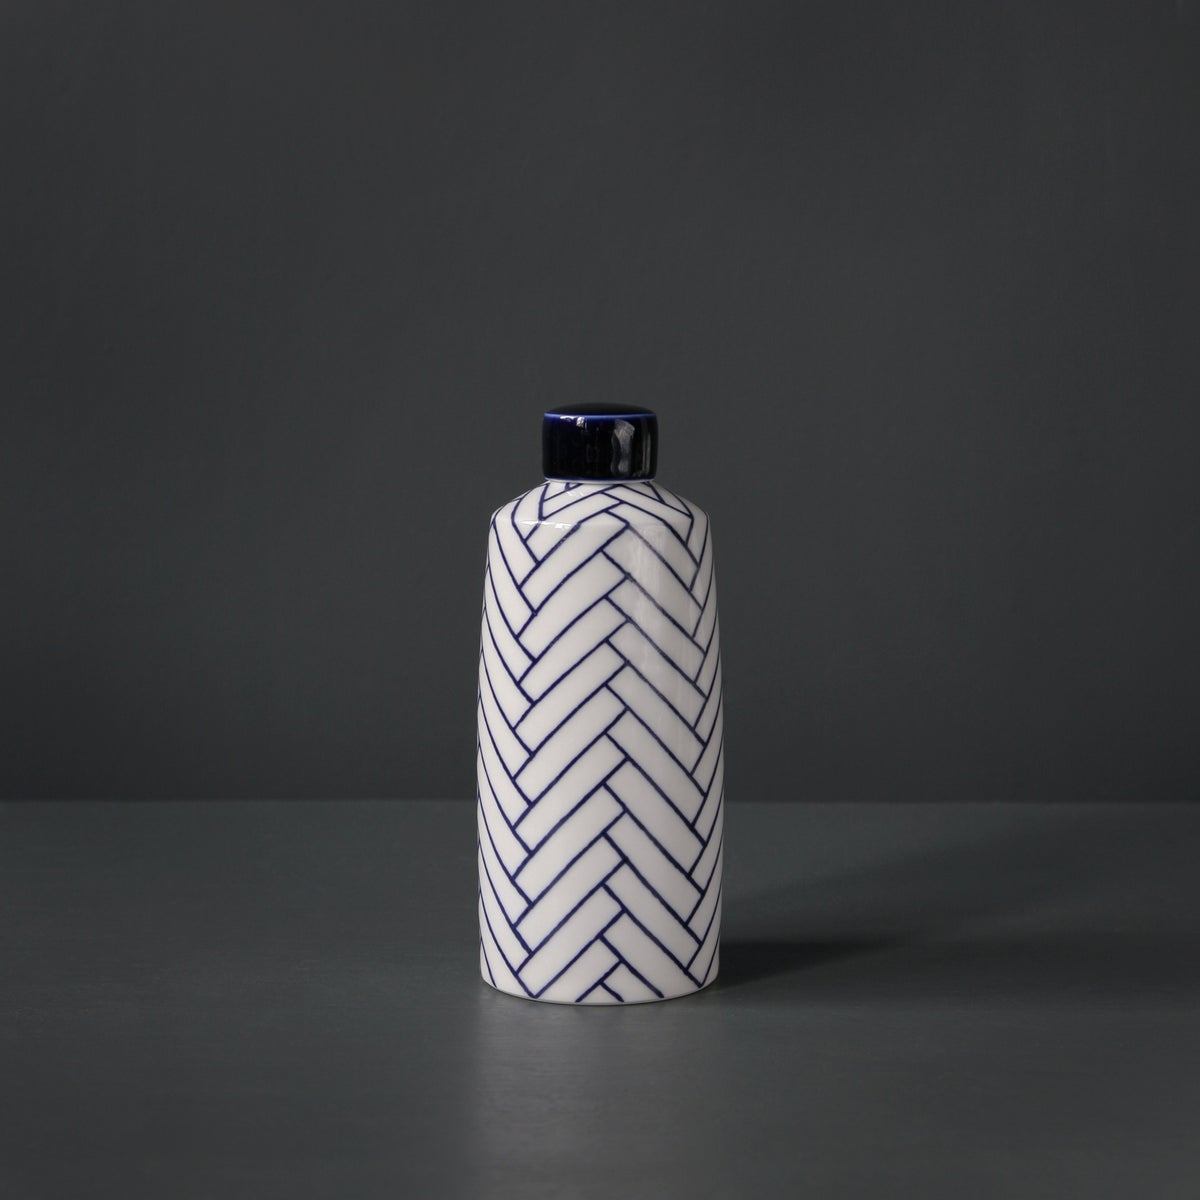 Image of Medium 'Herringbone' Straight Ginger Jar by Rhian Malin.